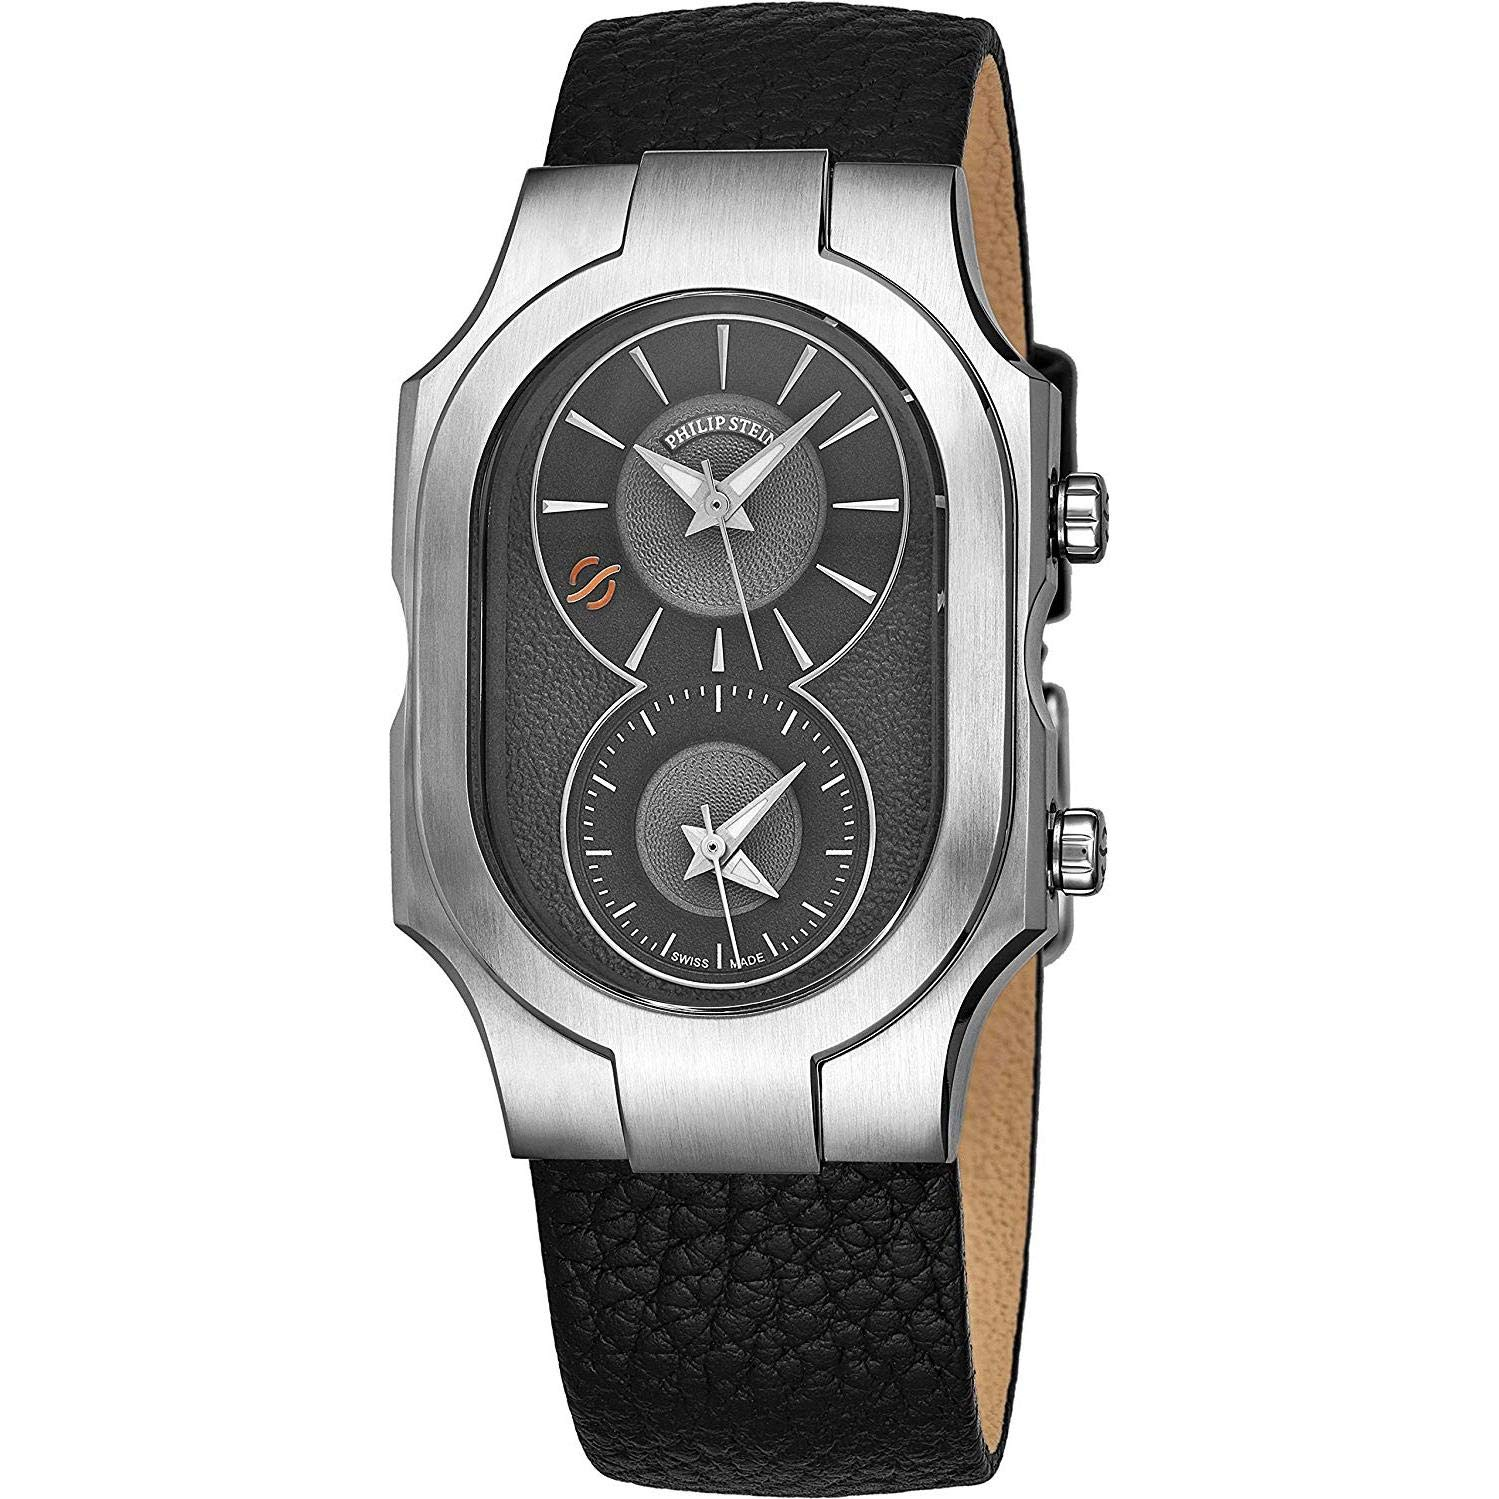 Philip Stein Signature Swiss Made Dual Time Zone Watch – Natural Frequency Technology Provides More Energy and Better Sleep – Analog Grey Face with Luminous Hands Black Leather Band Quartz Watch